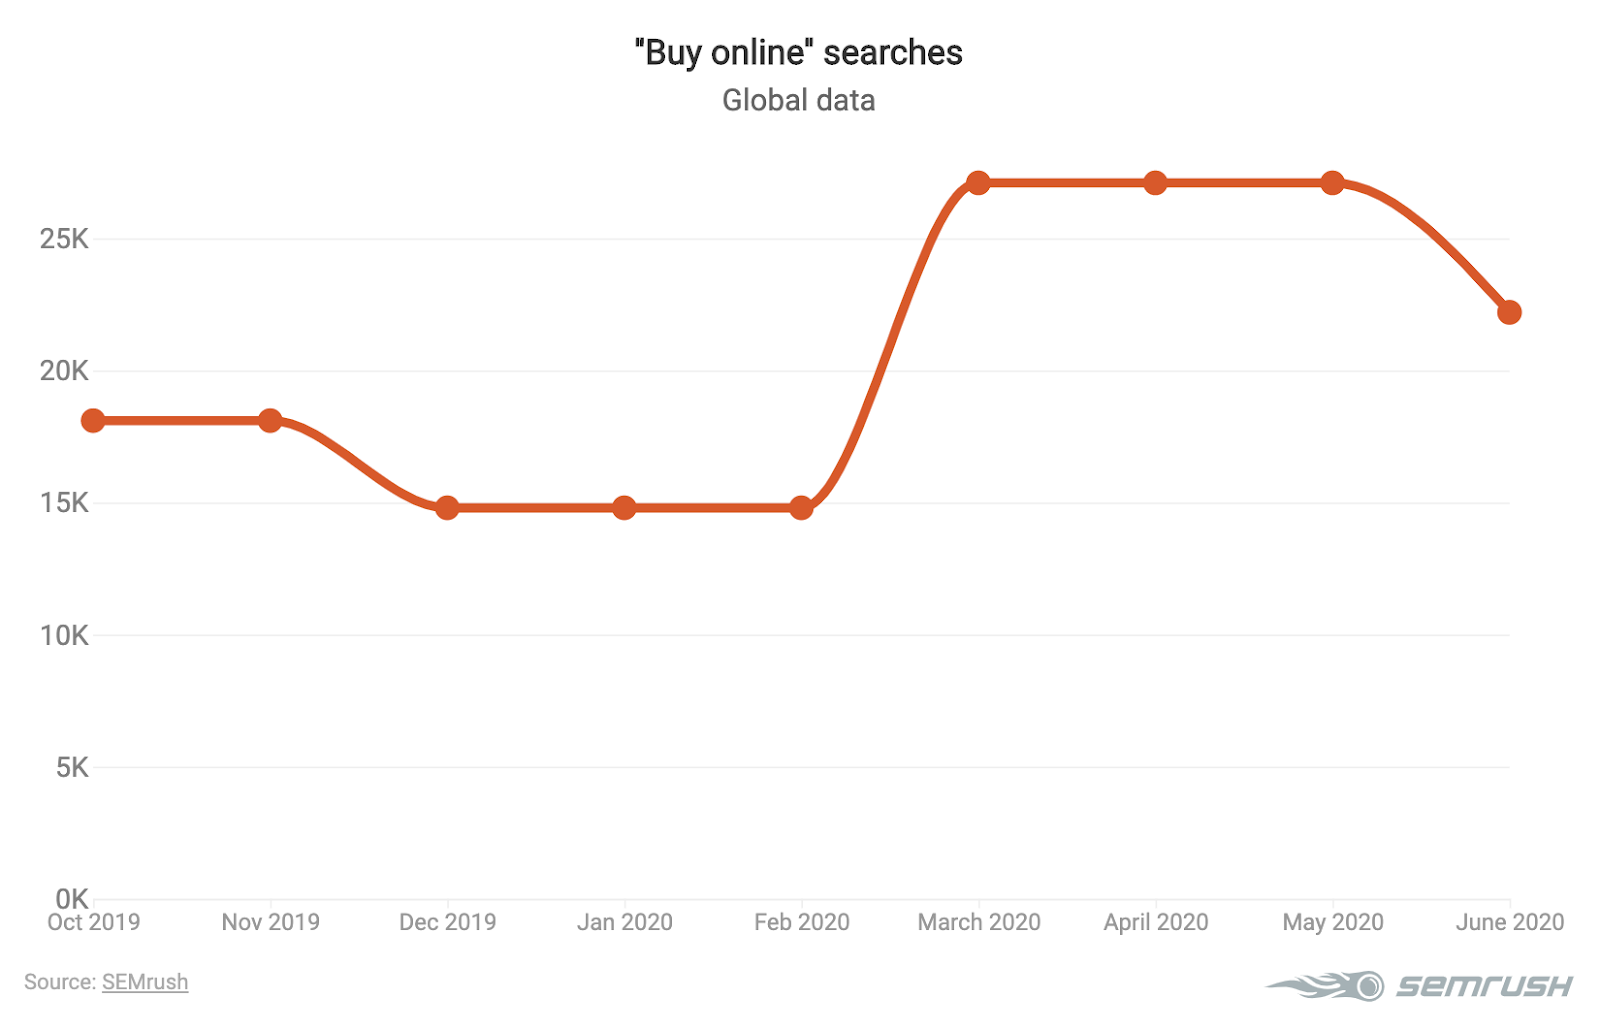 Buy online keyword searches for June 2020 chart